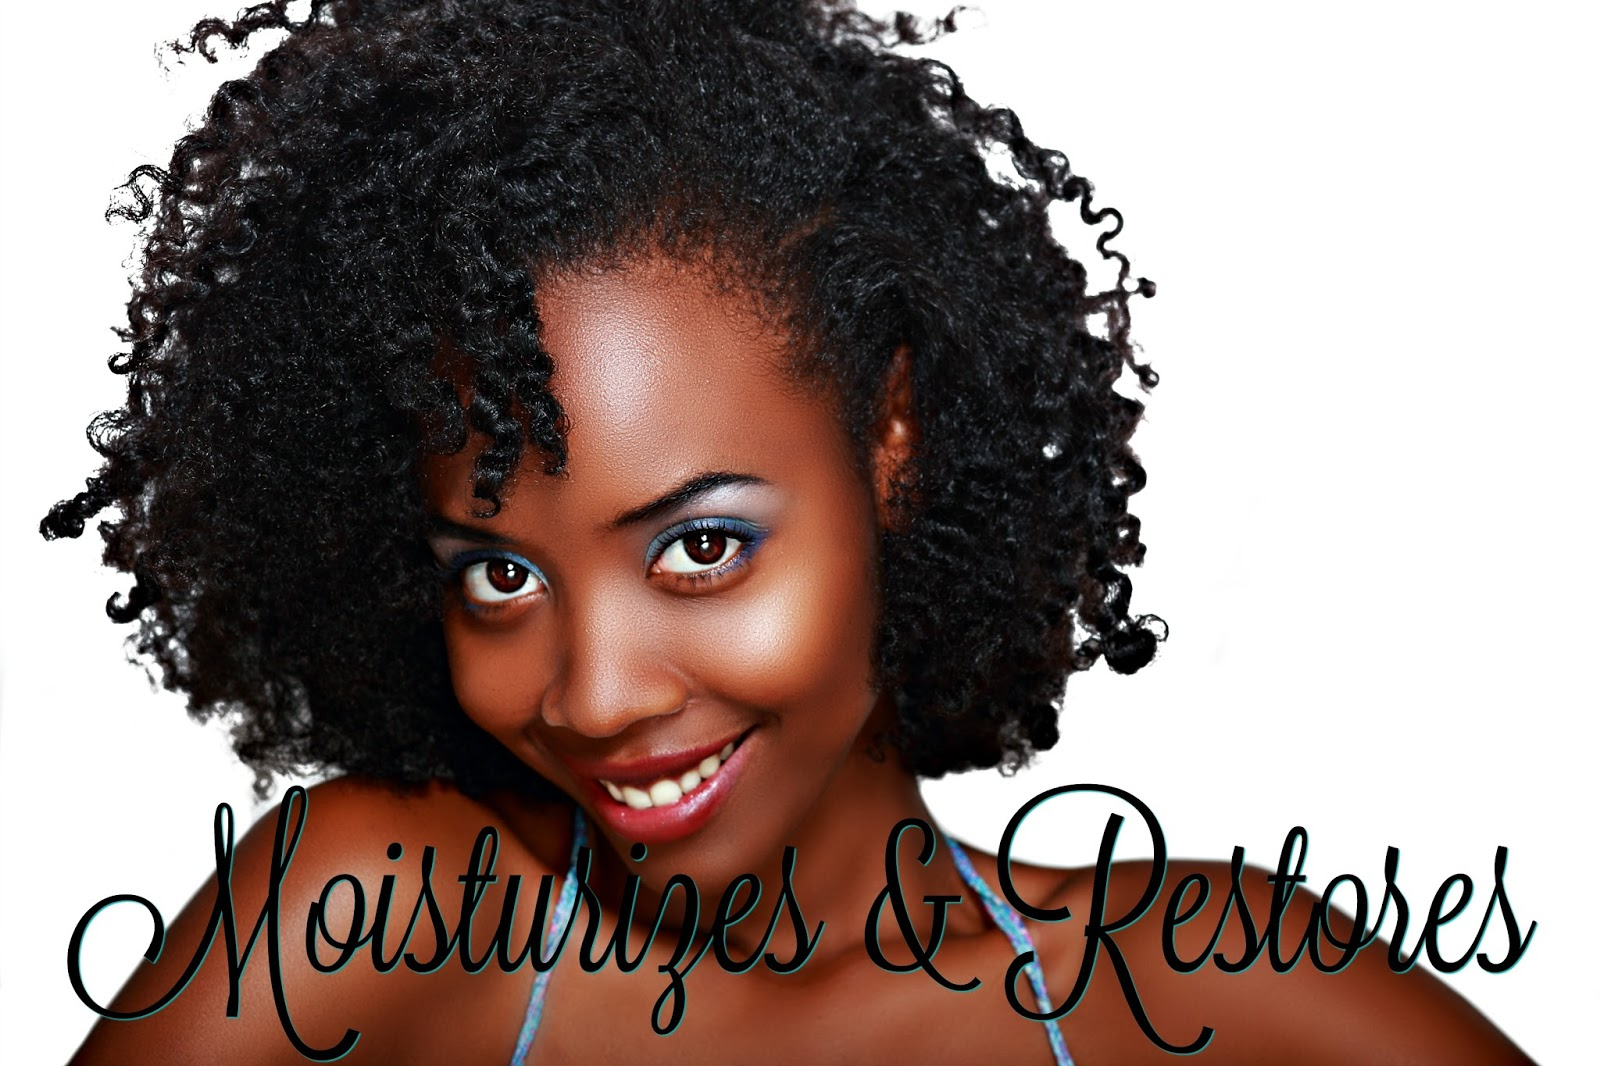 Click here to buy Klorane Mask with Mango Butter to help moisturize natural hair